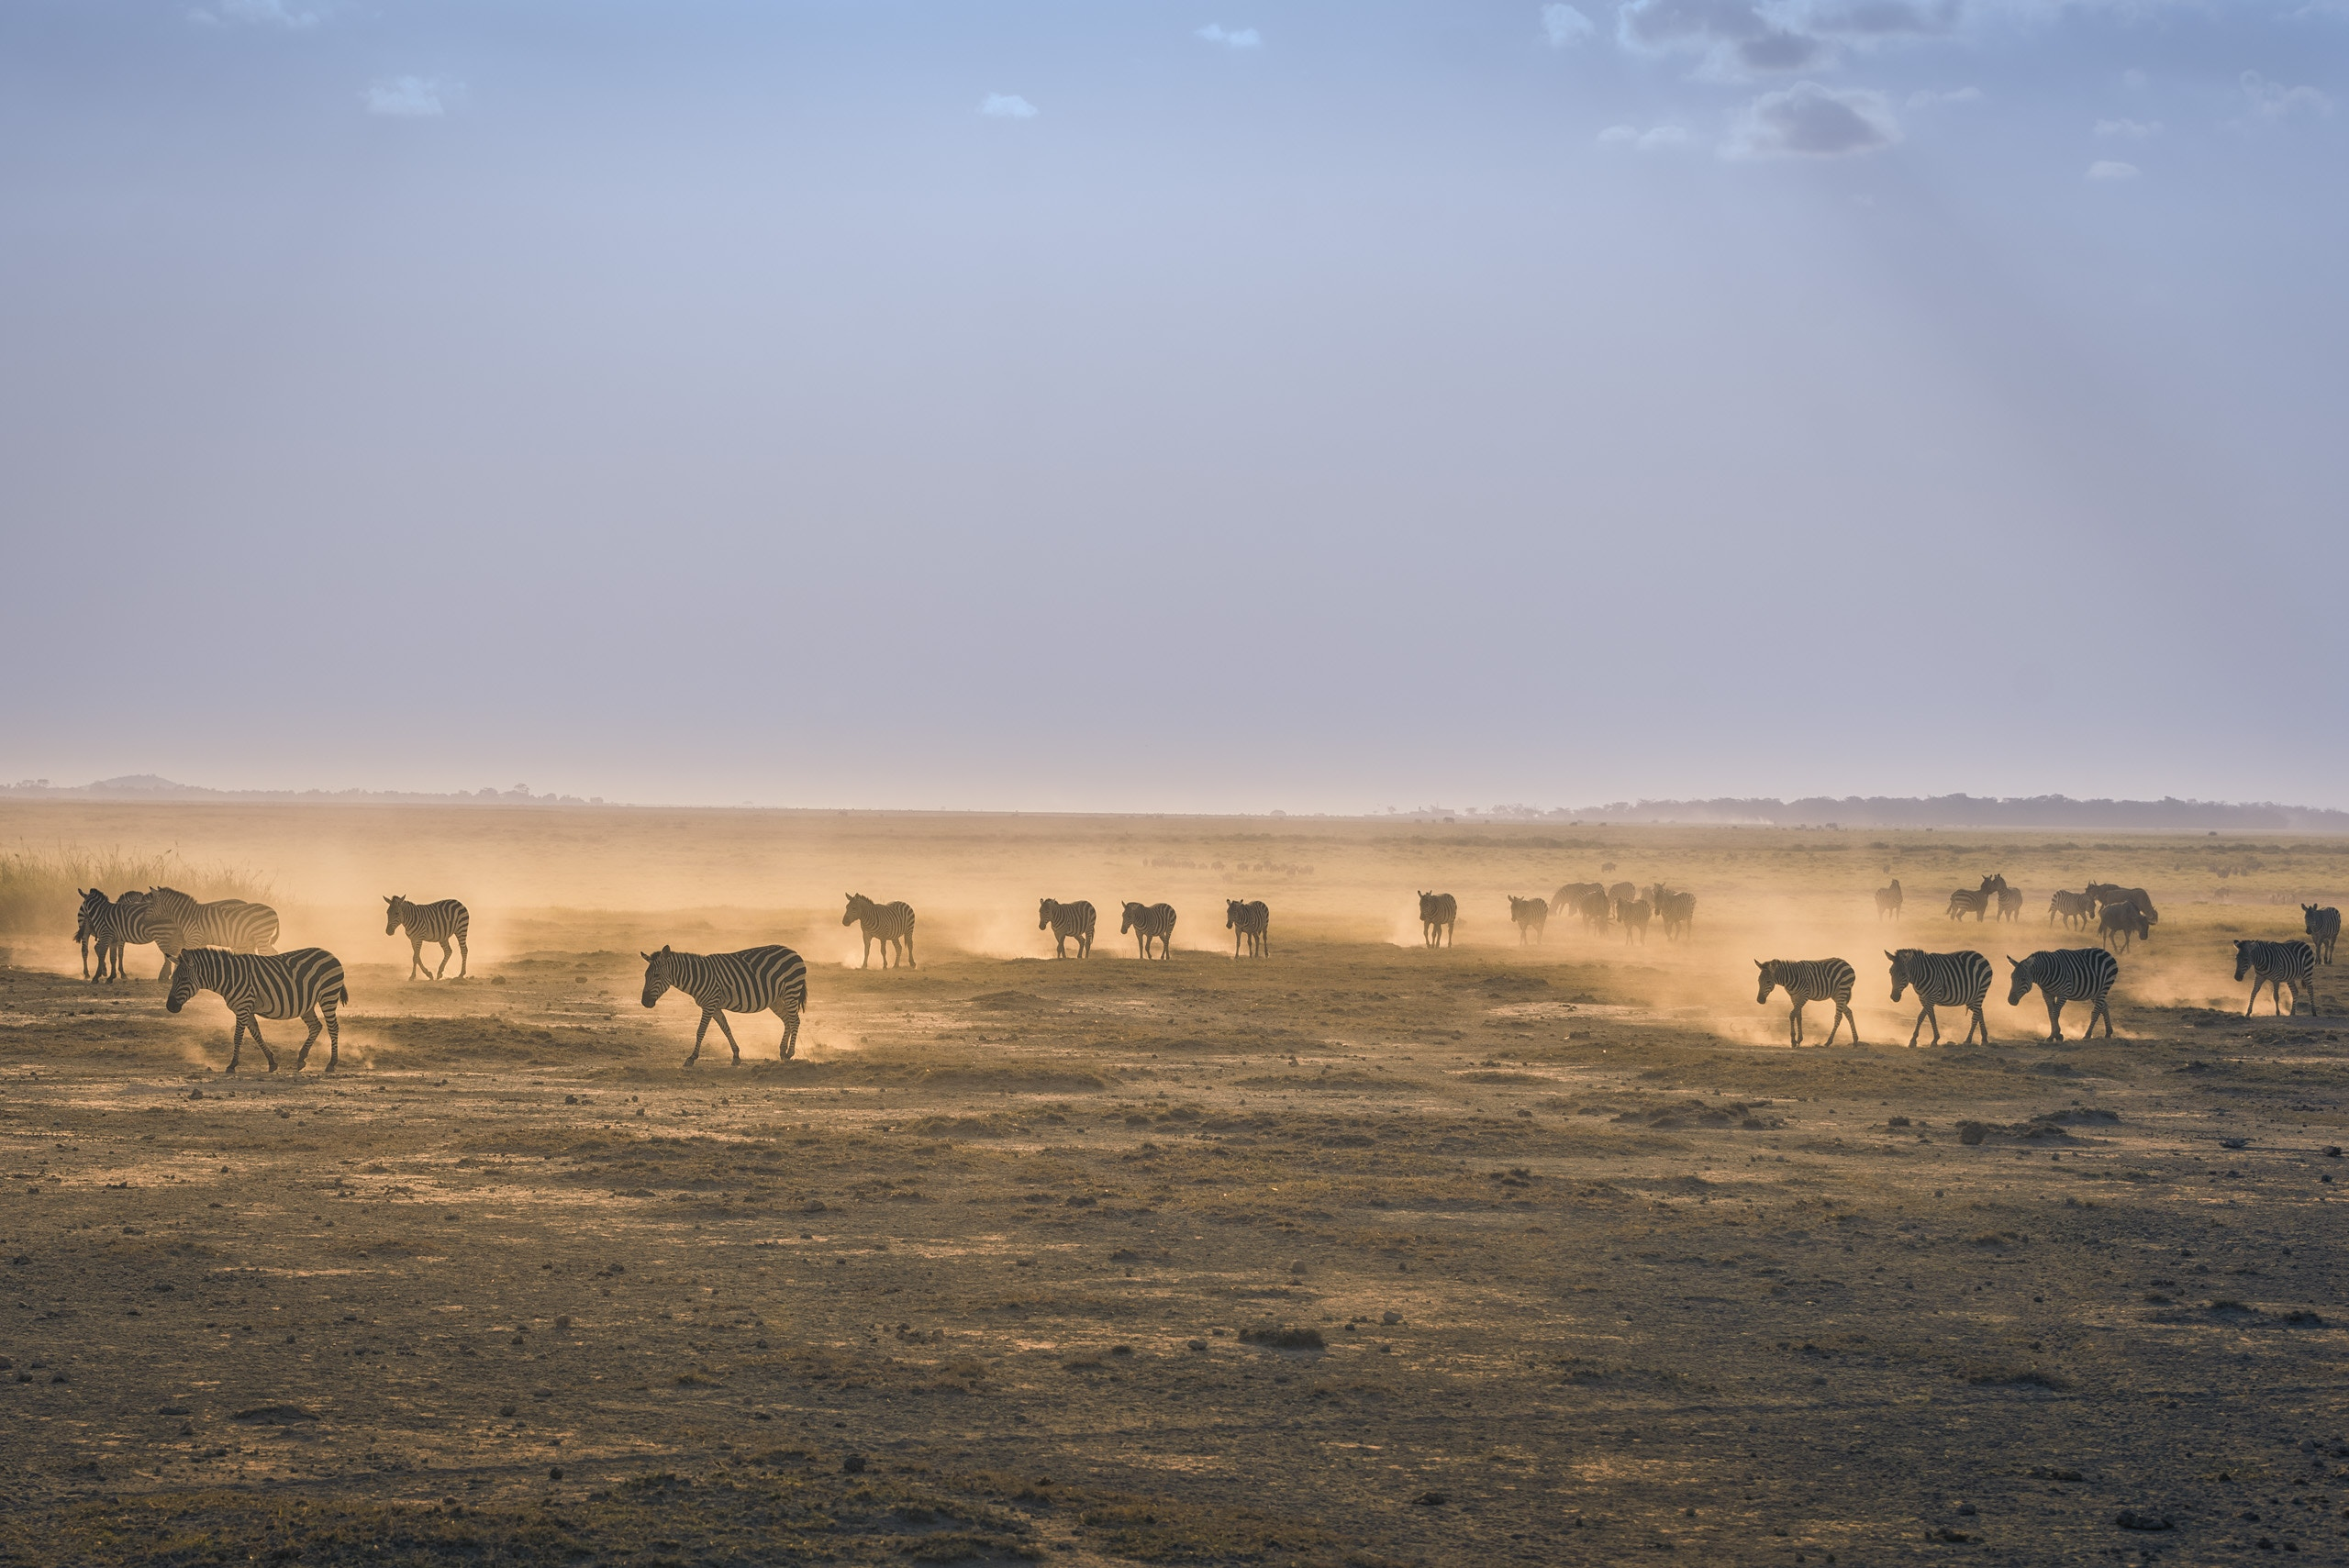 A photo of zebras migration as a metaphor for data migration